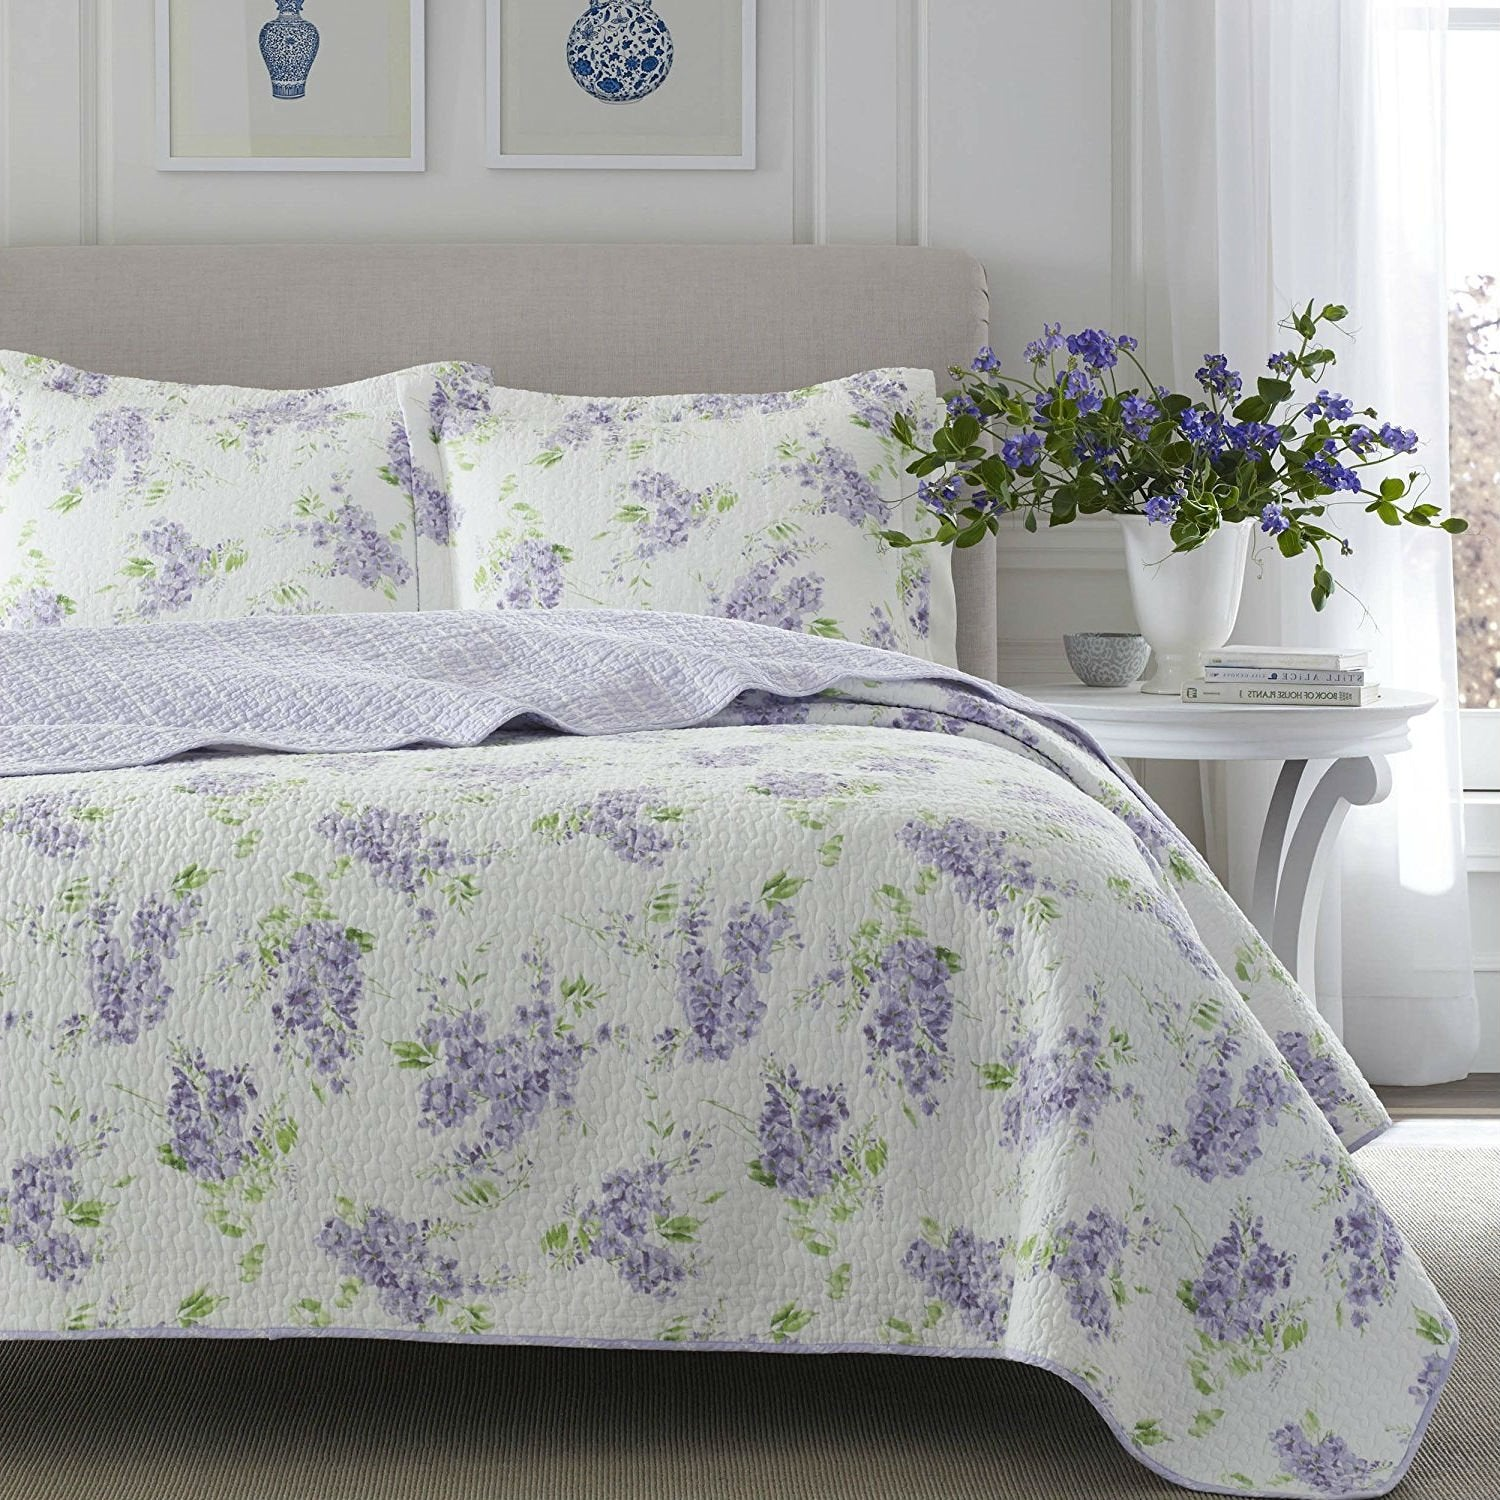 King size 3-Piece Cotton Quilt Set with Purple White Floral Pattern